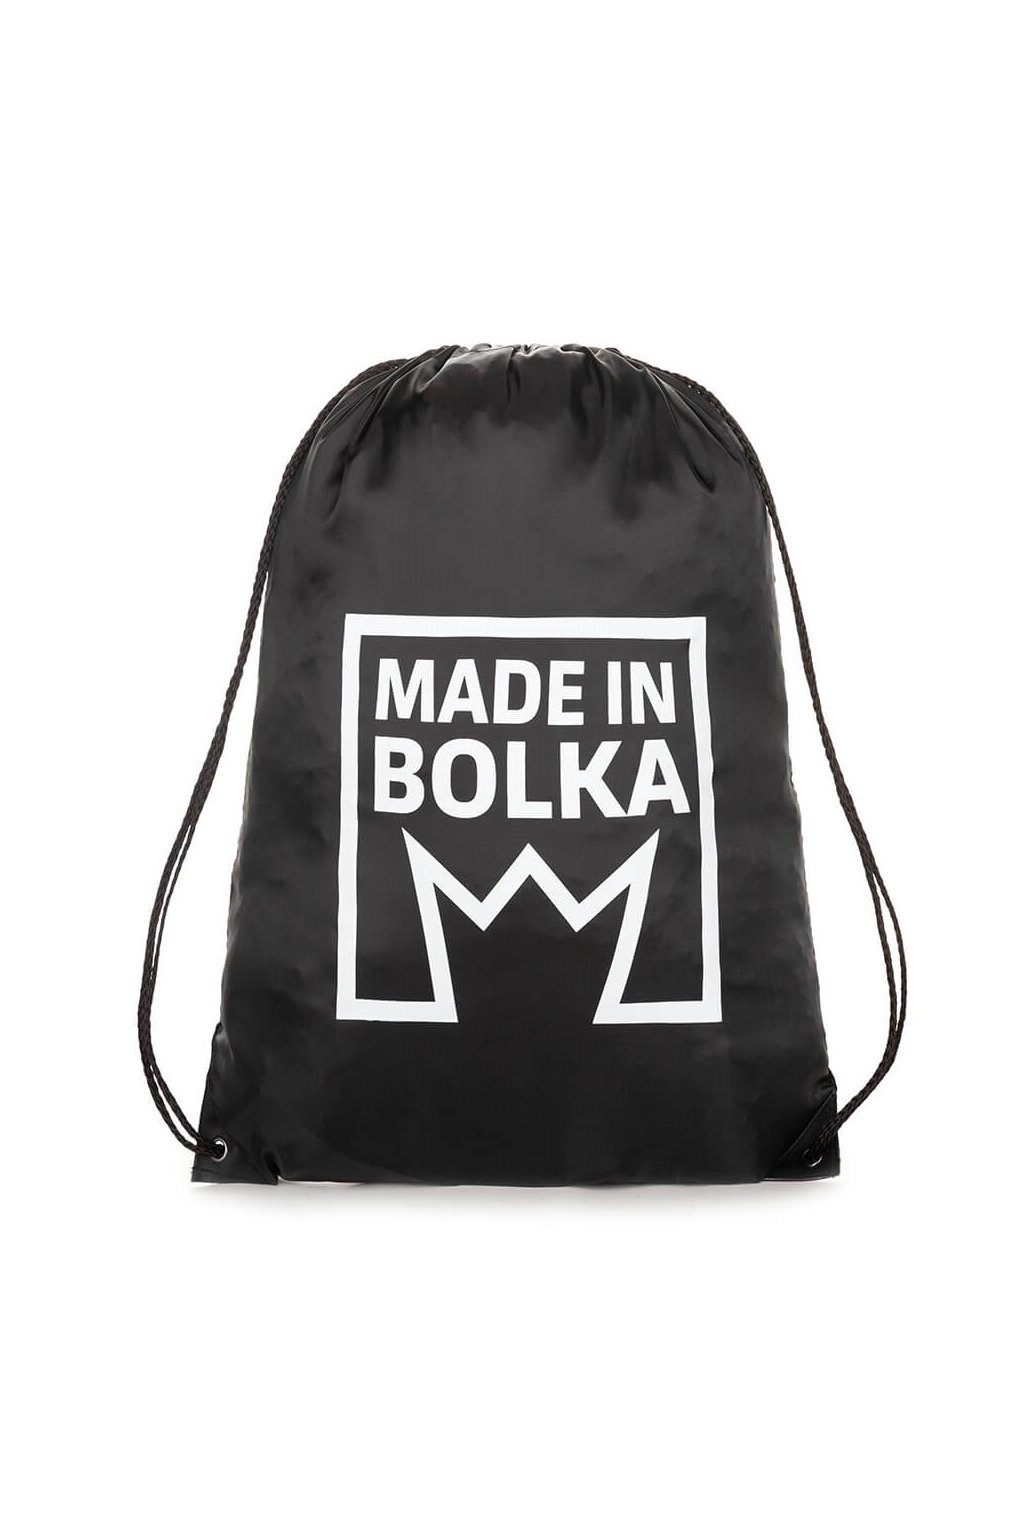 MB003 MADE IN BOLKA GYMSACK